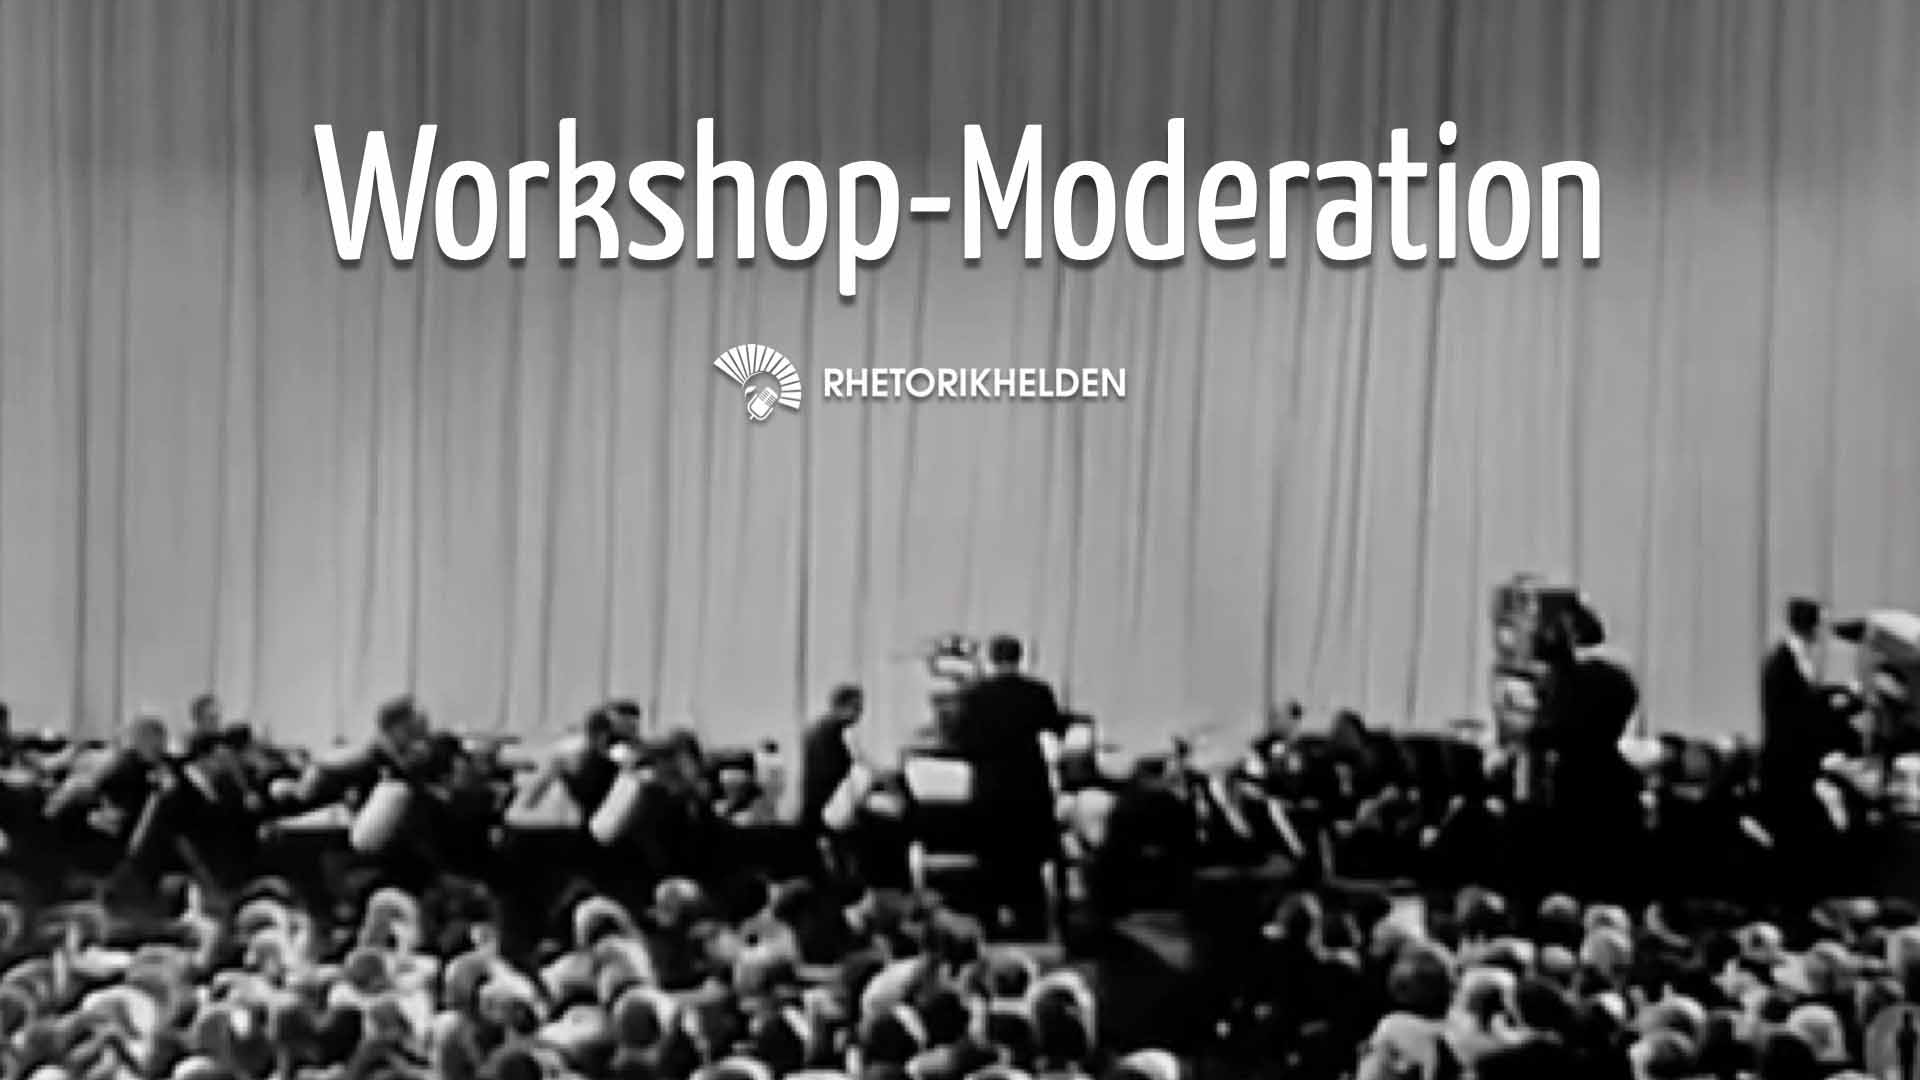 Präsentationsfolie zum Workshop Moderation: Workshop-Moderation